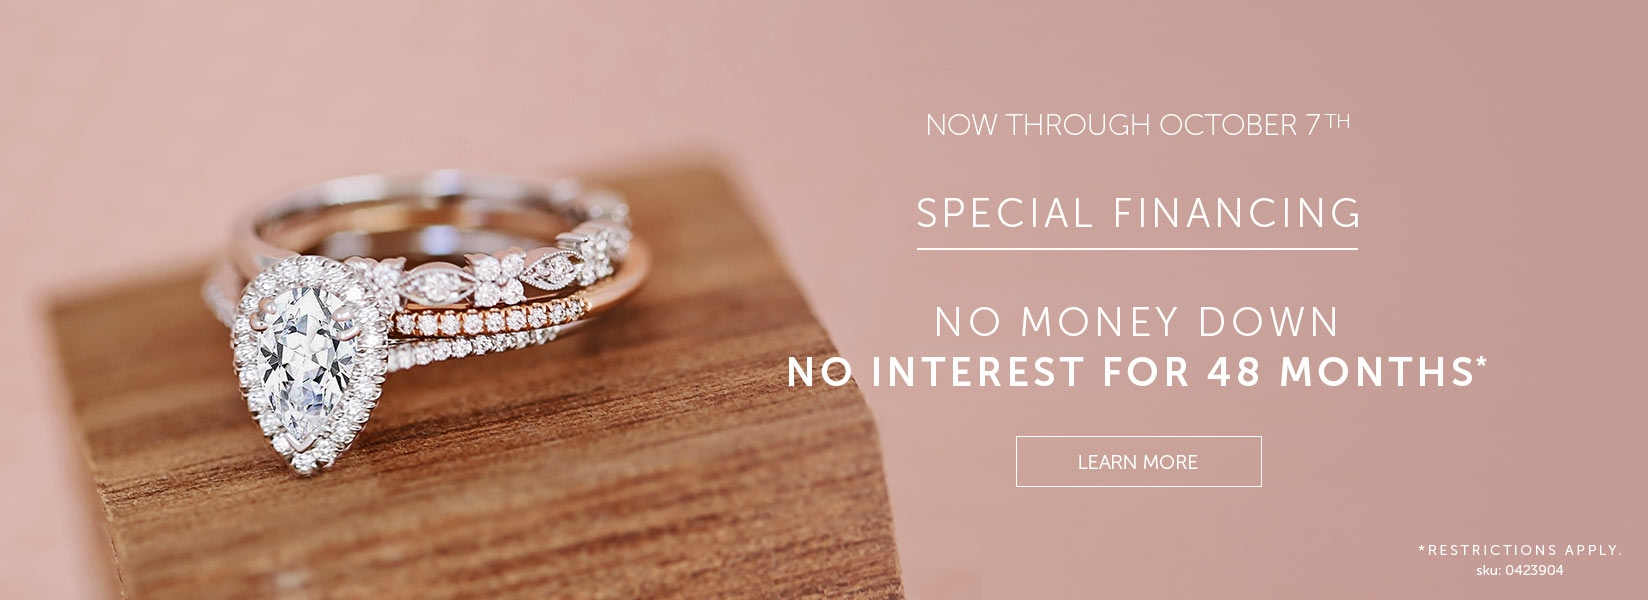 PECIAL FINANCING FOR NO INTREST FOR 48 Months*